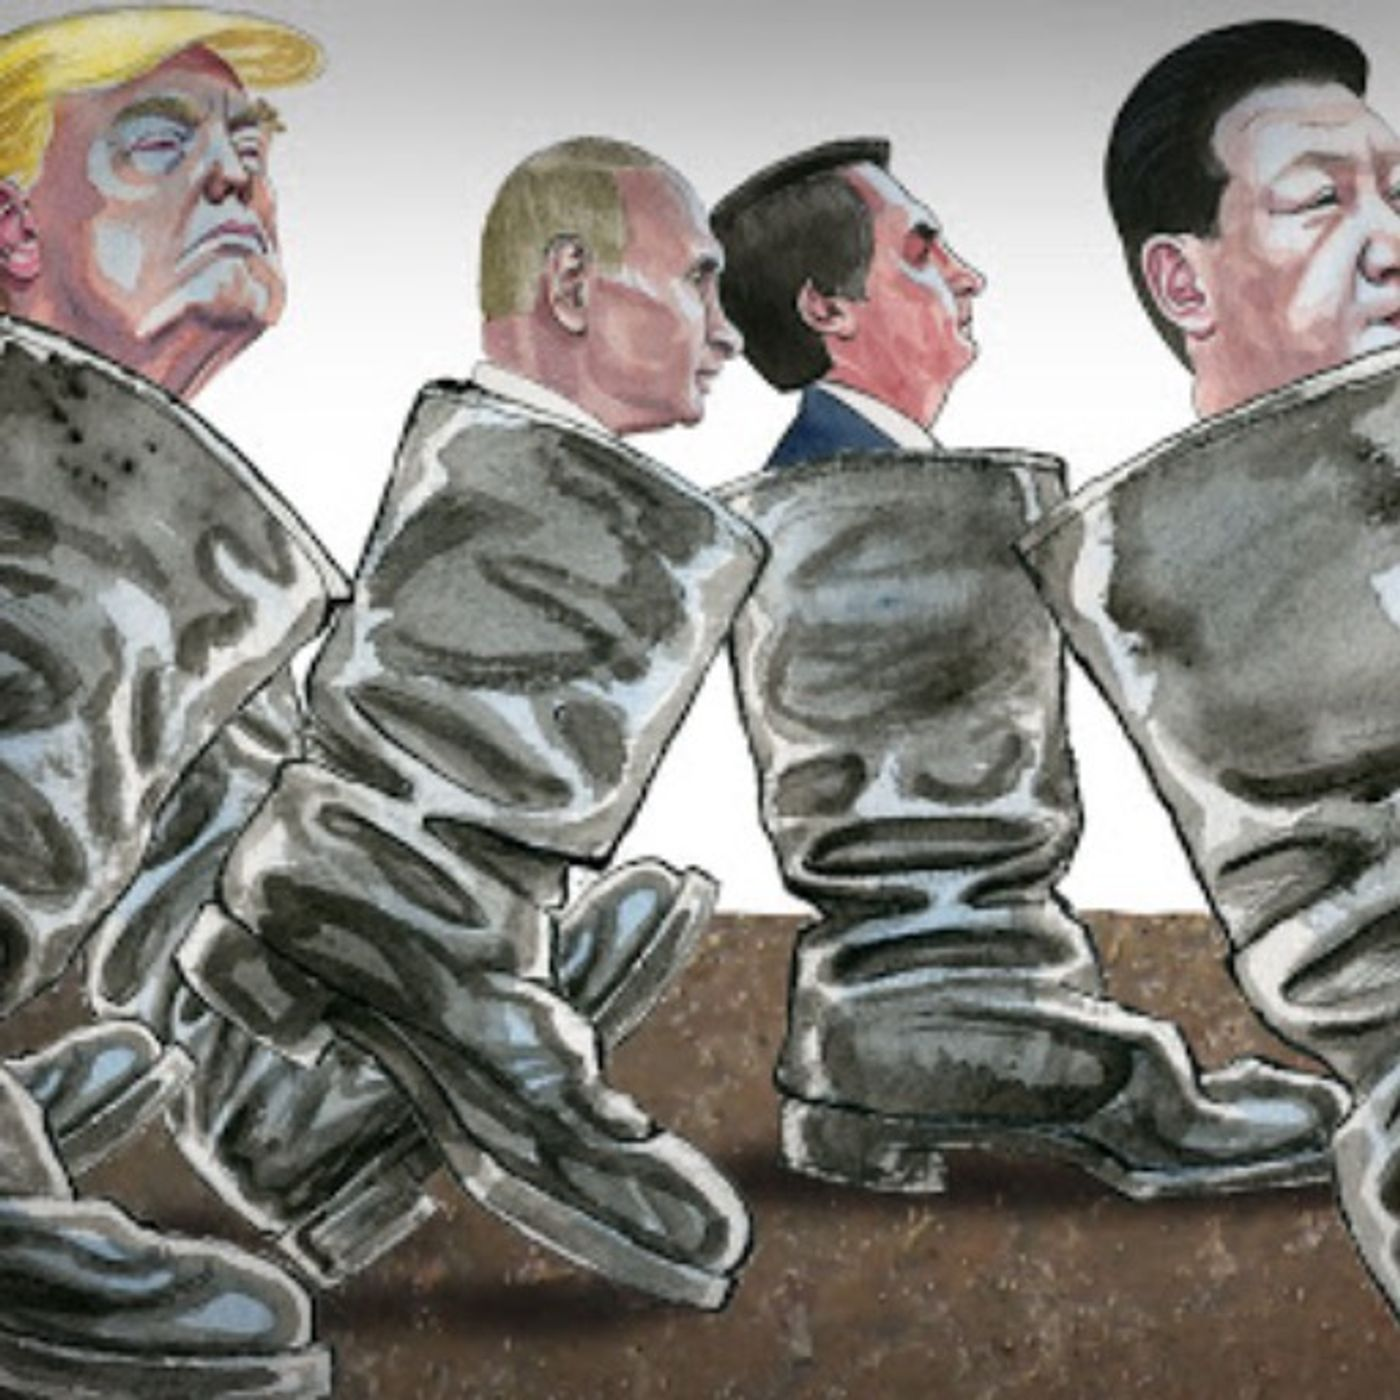 POLICY AND PRACTICE - Populism and the Rise of Autocracy